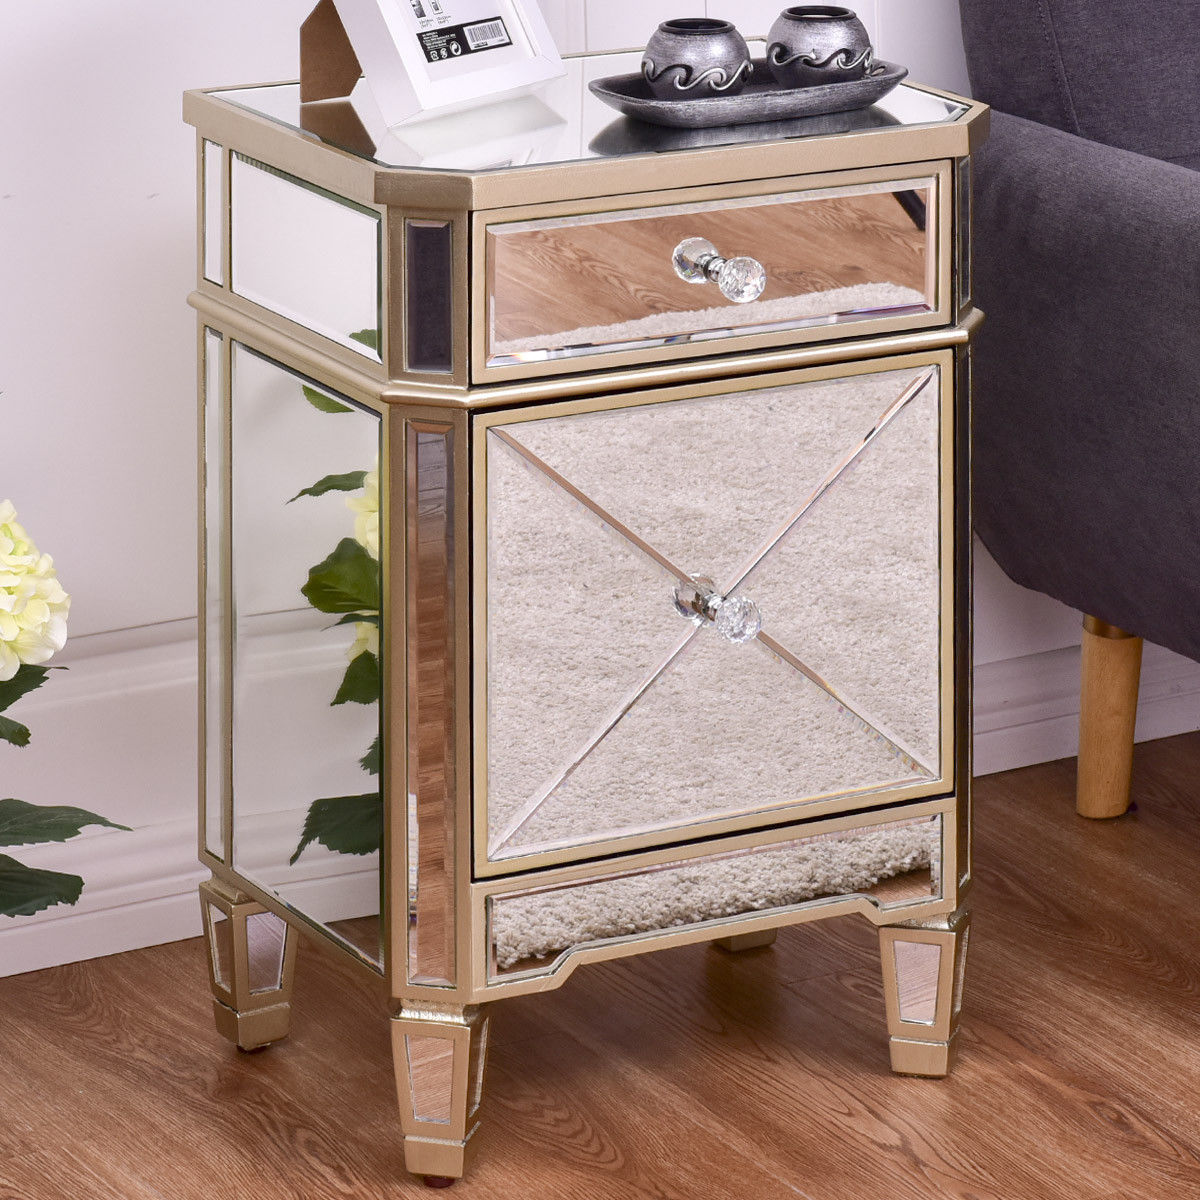 Giantex Modern Mirrored Nightstand Bedroom Storage Accent Cabinet Beside  Table Chest With Drawer Luxury Home Furniture HW56407 In Nightstands From  Furniture ...